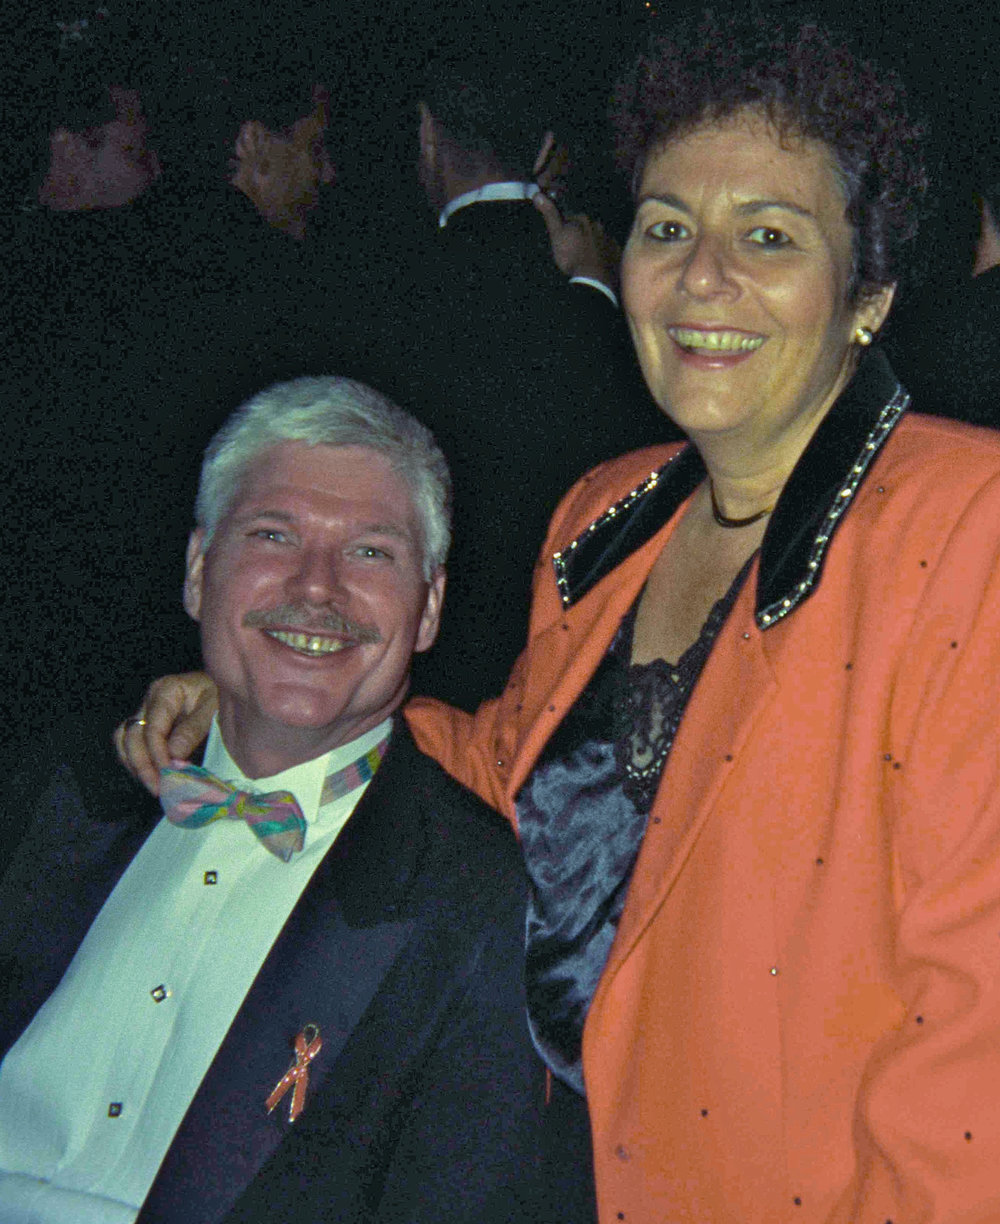 Principal founder of Black Tie Dinner, John Thomas, with close friend Vivian Shapiro of New York